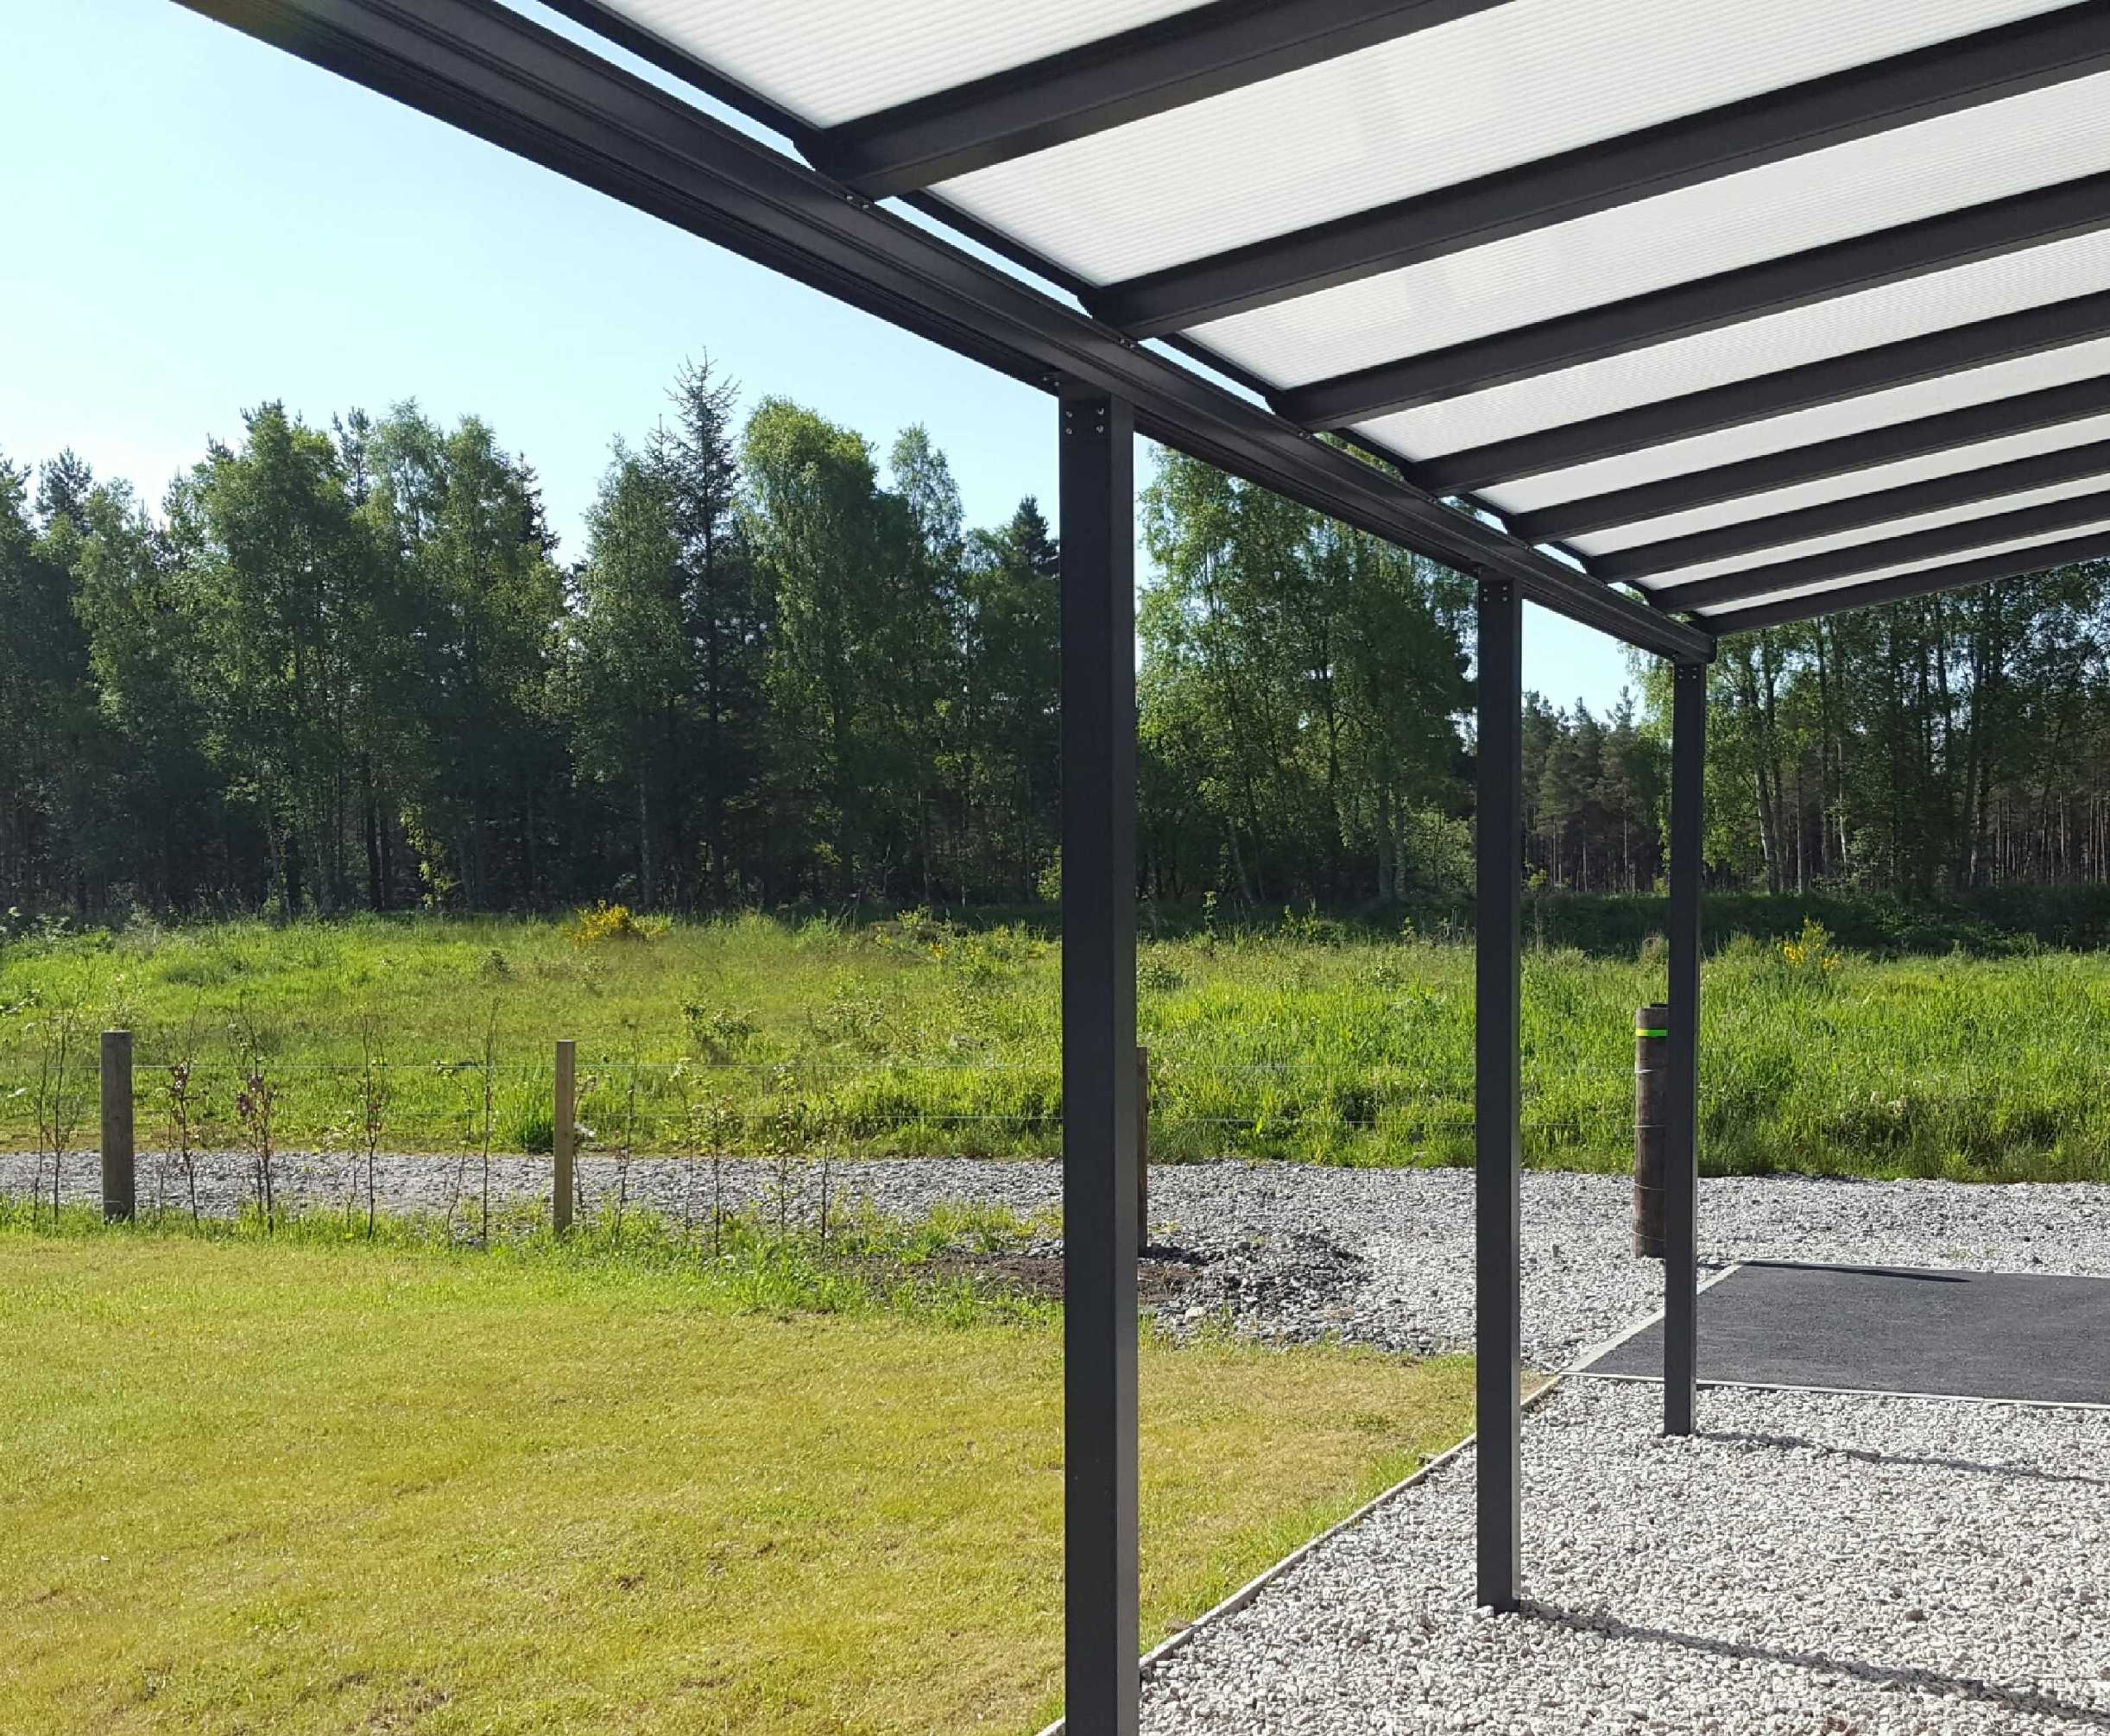 Omega Smart Lean-To Canopy, Anthracite Grey, 16mm Polycarbonate Glazing - 2.1m (W) x 3.0m (P), (2) Supporting Posts